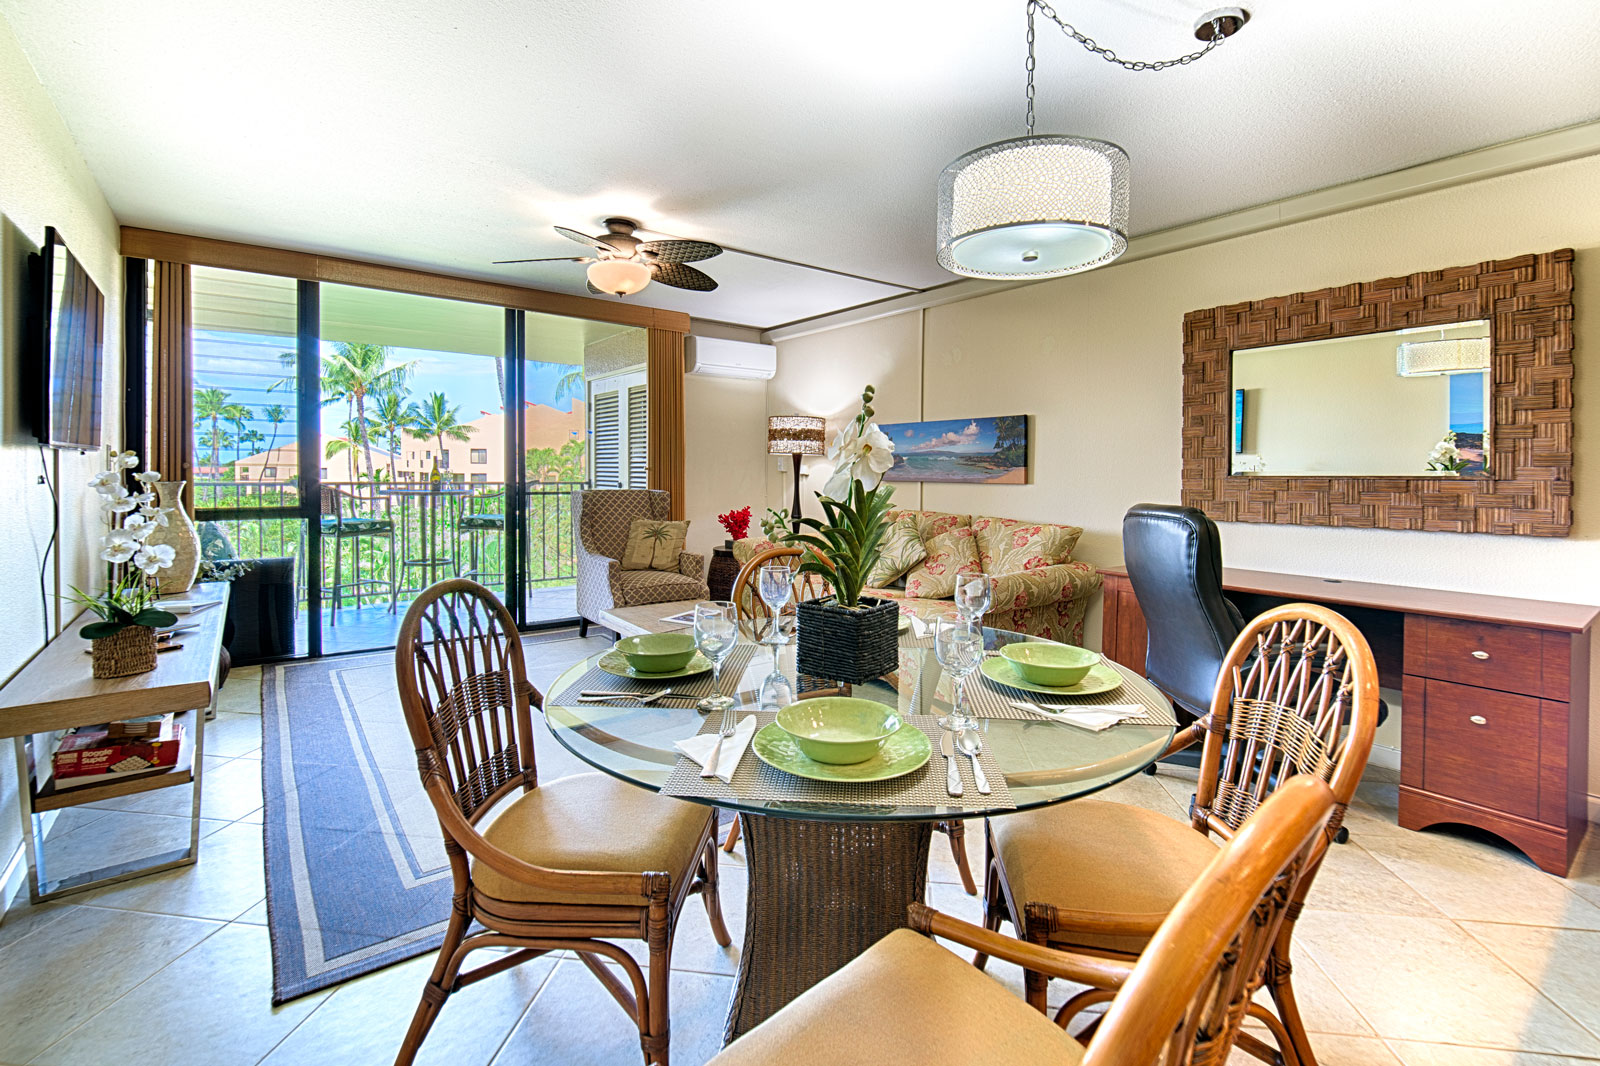 Kamaole Sands Hawaii Condo Rental 5-310